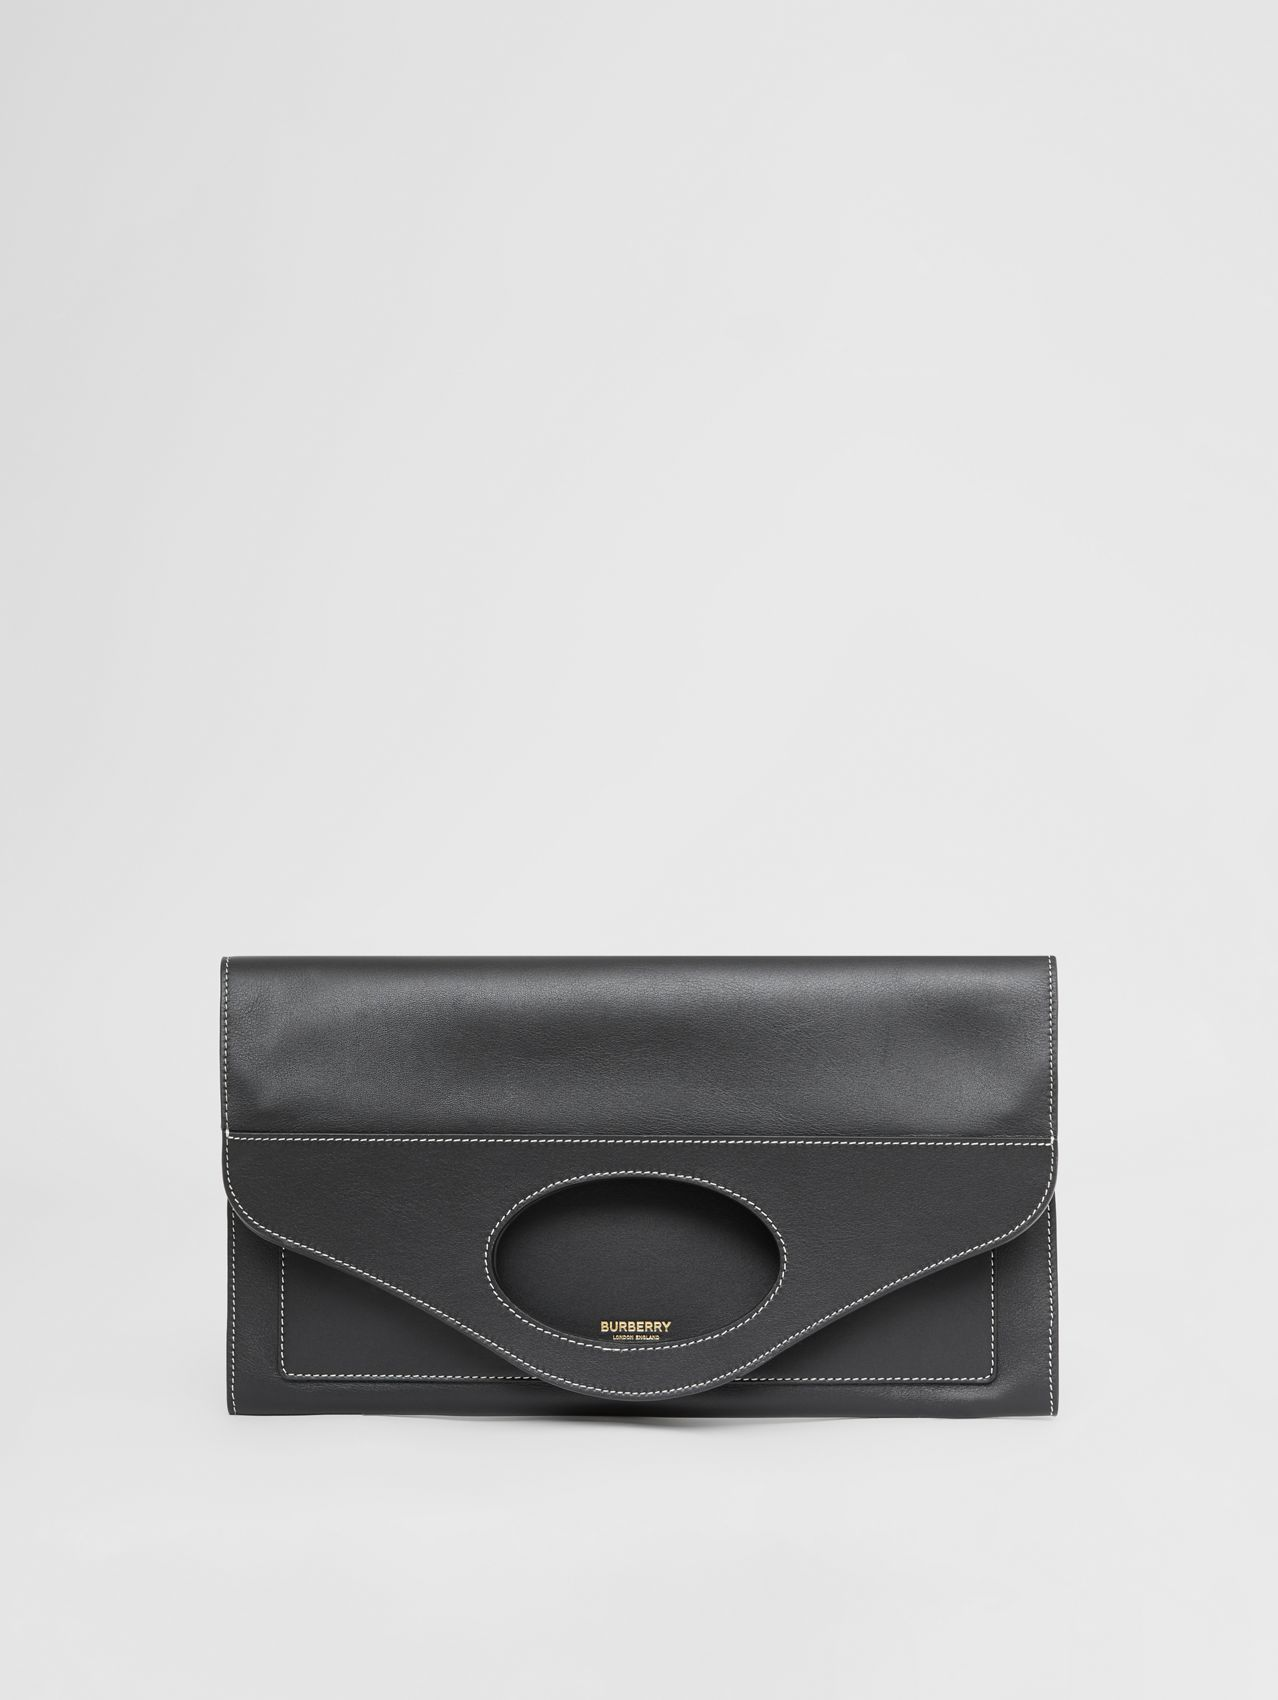 Small Topstitched Leather Pocket Clutch in Black